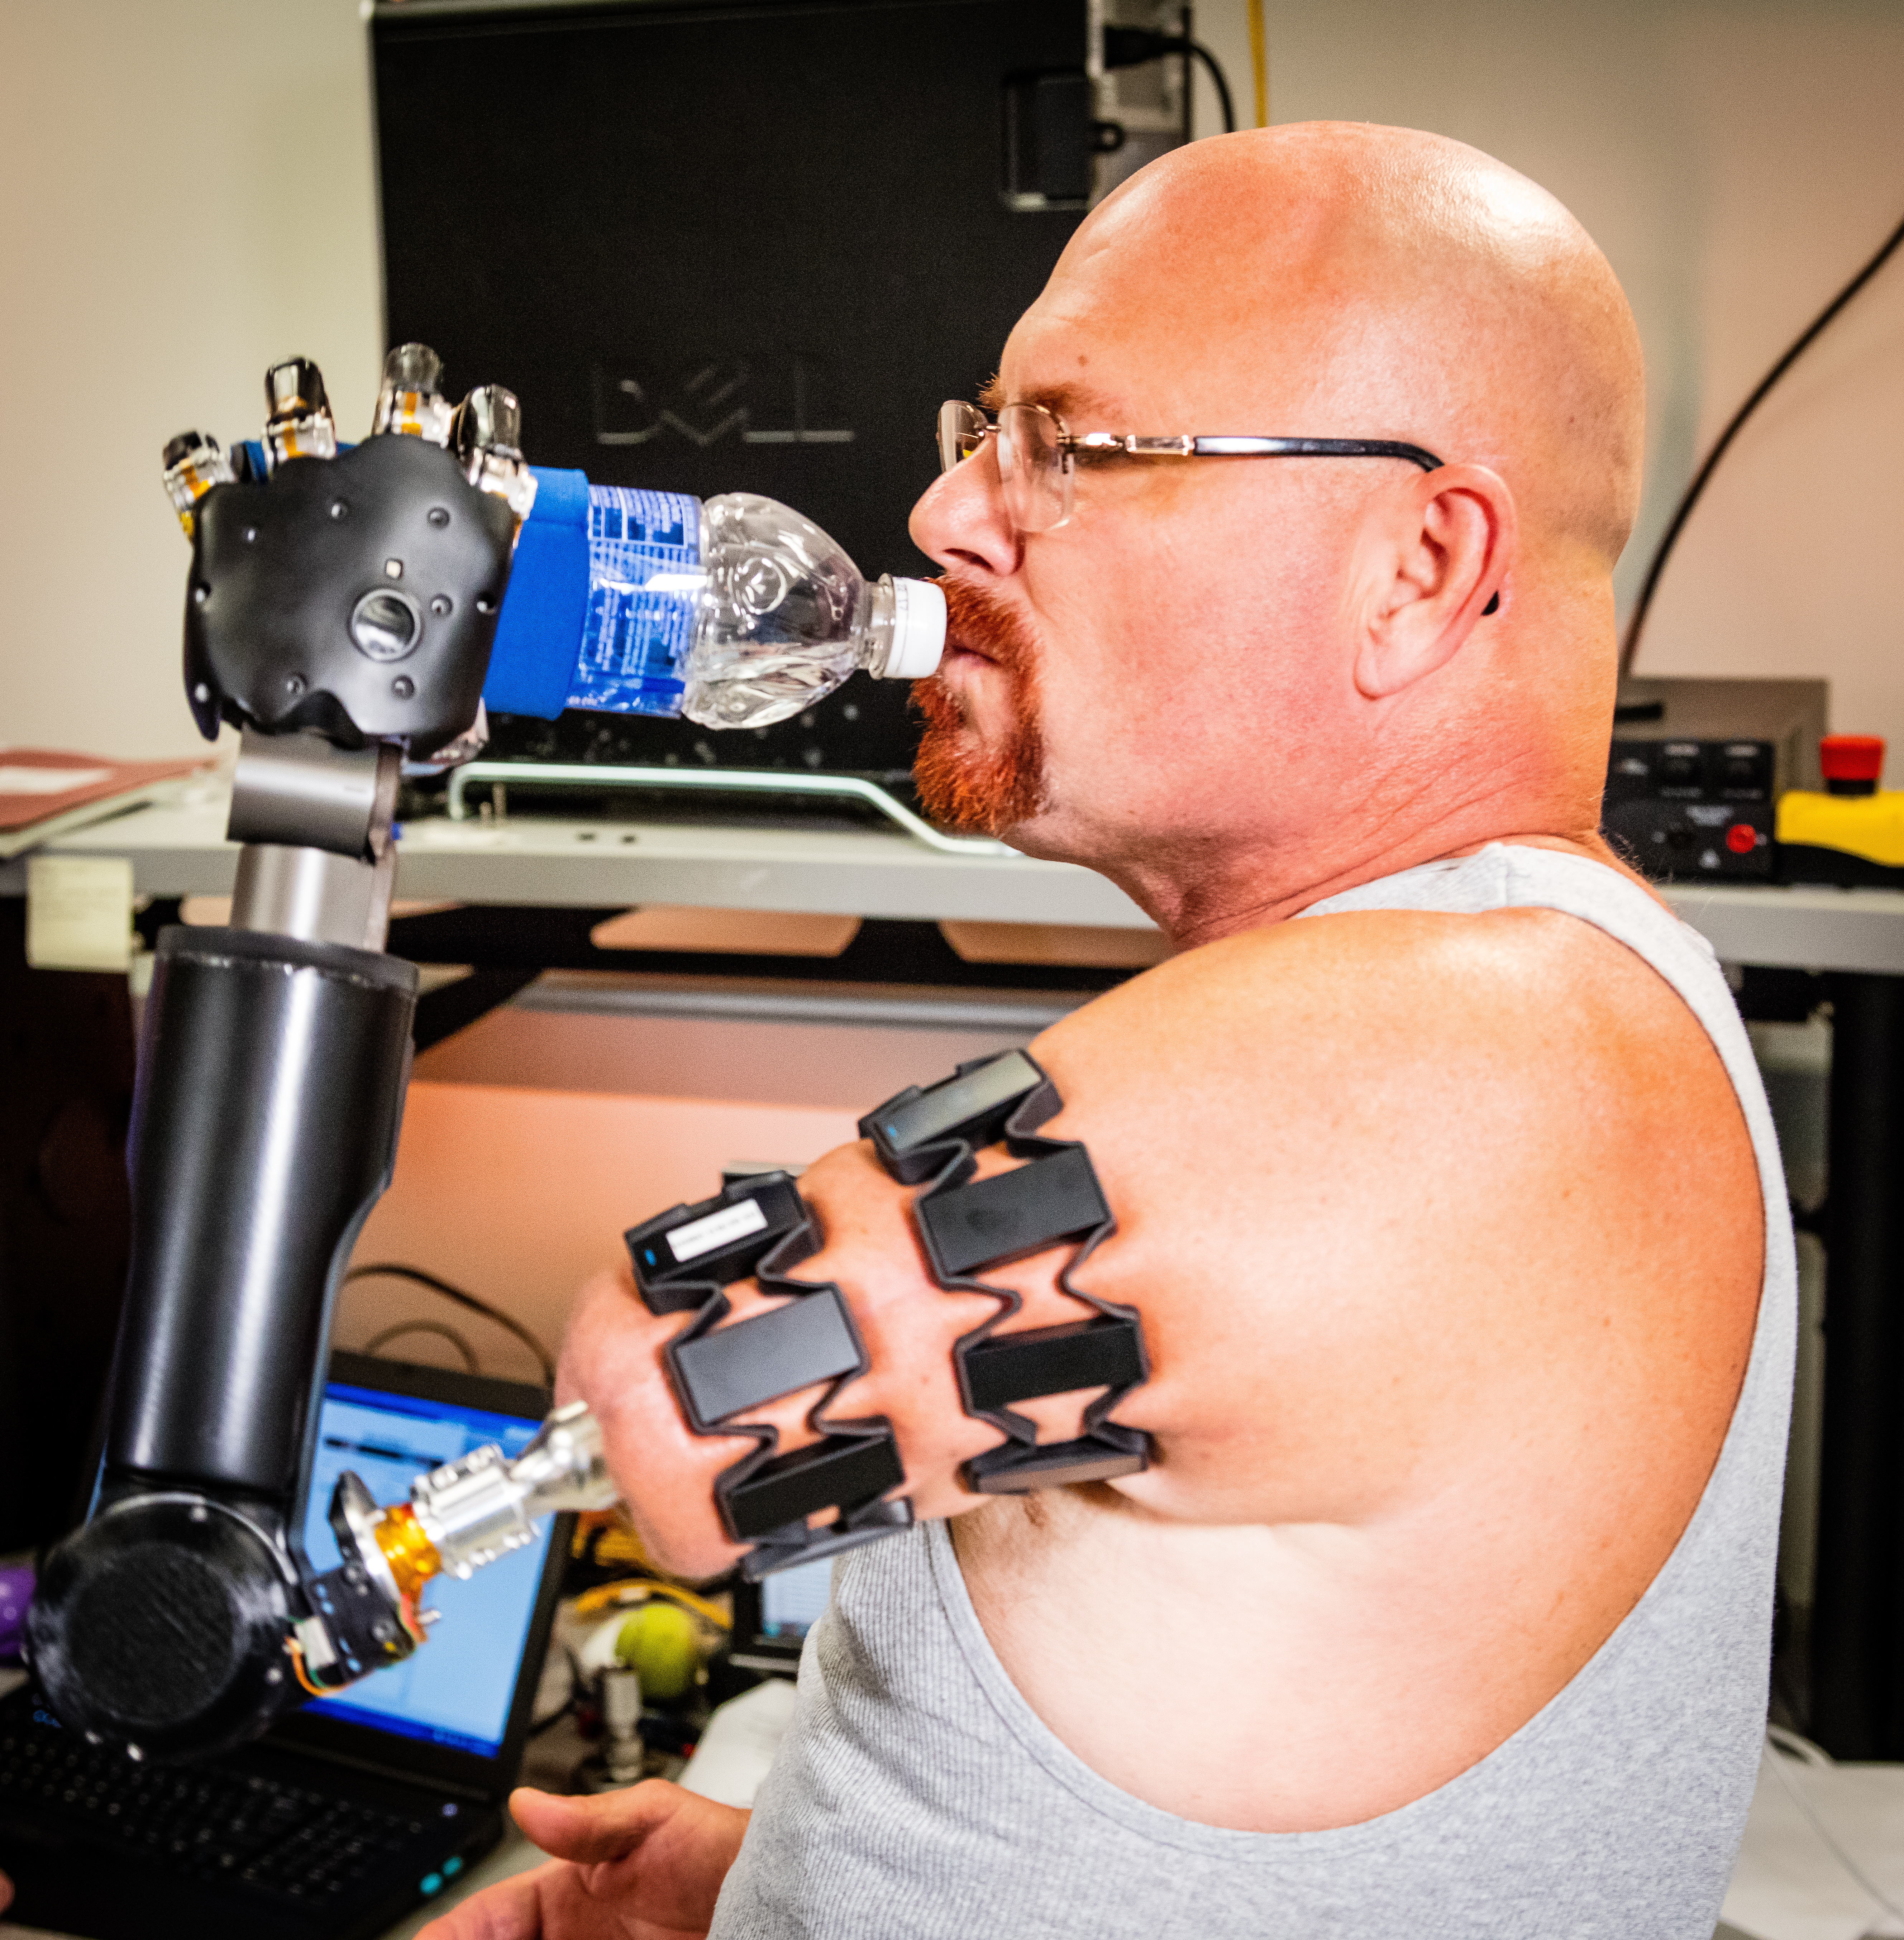 Johnny Metheny with his experimental prosthetic, and the Myo armbands that let him control it.